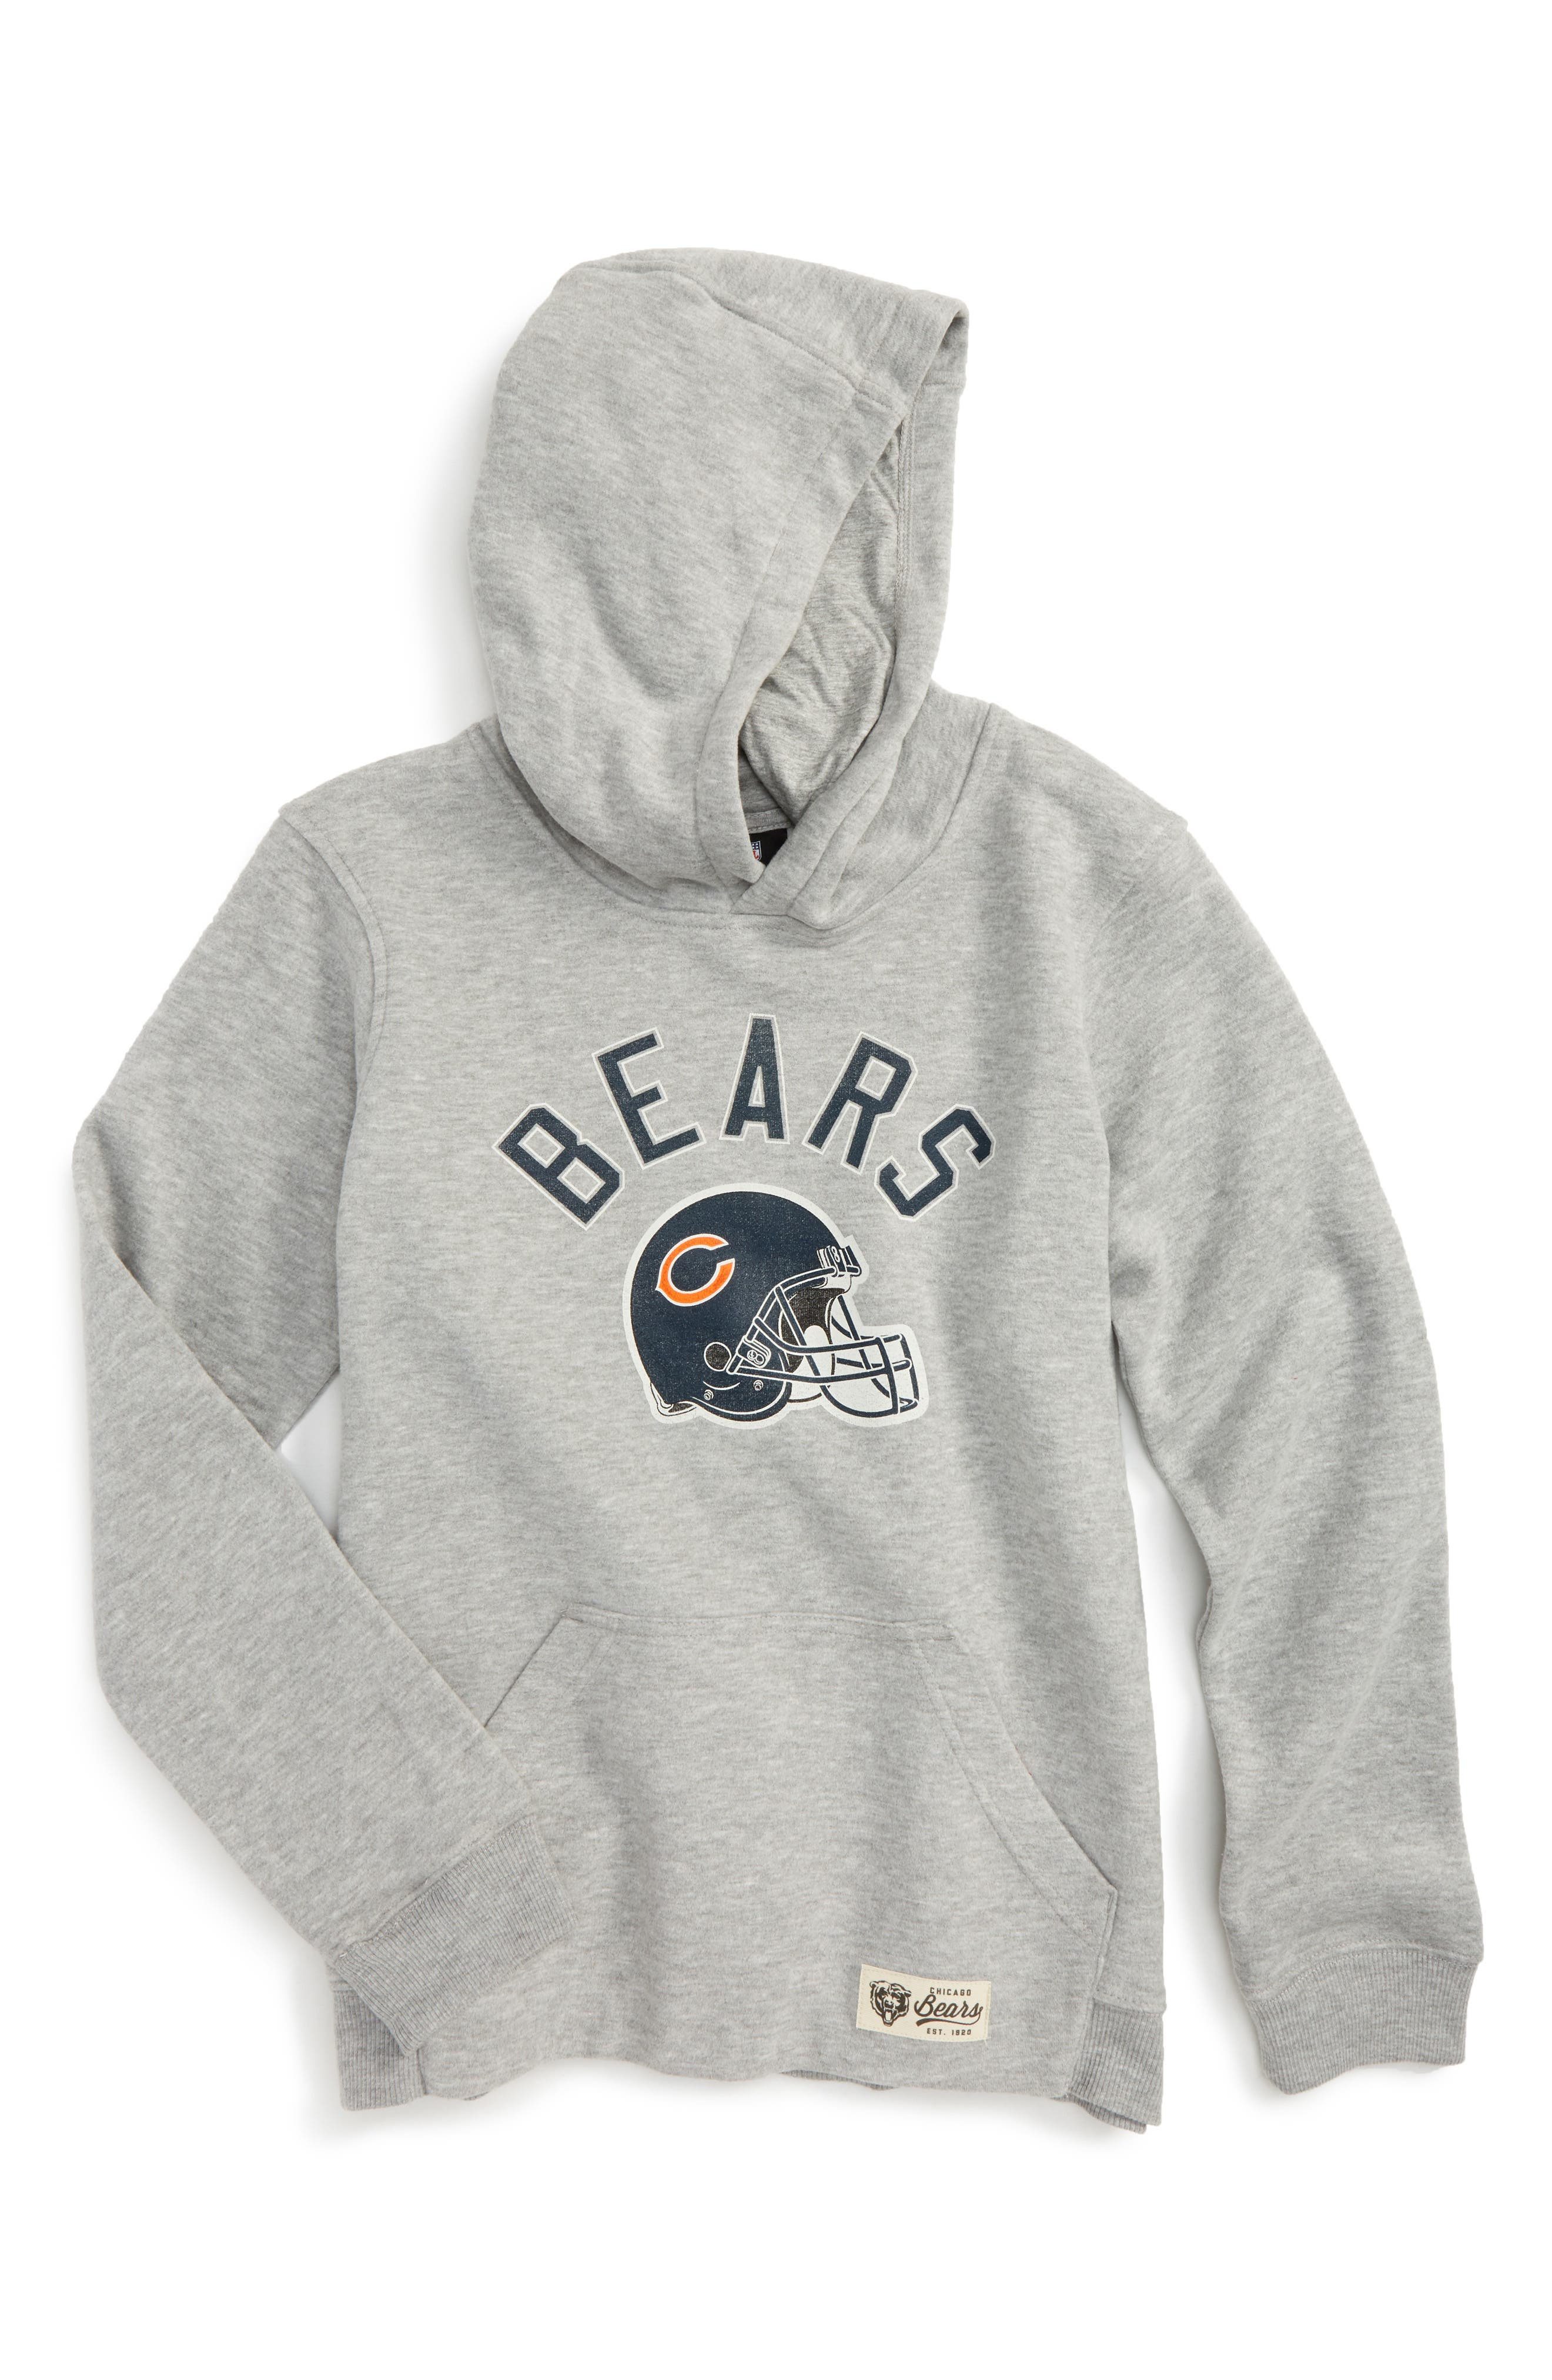 Alternate Image 1 Selected - Outerstuff NFL Chicago Bears Pullover Hoodie (Big Boys)